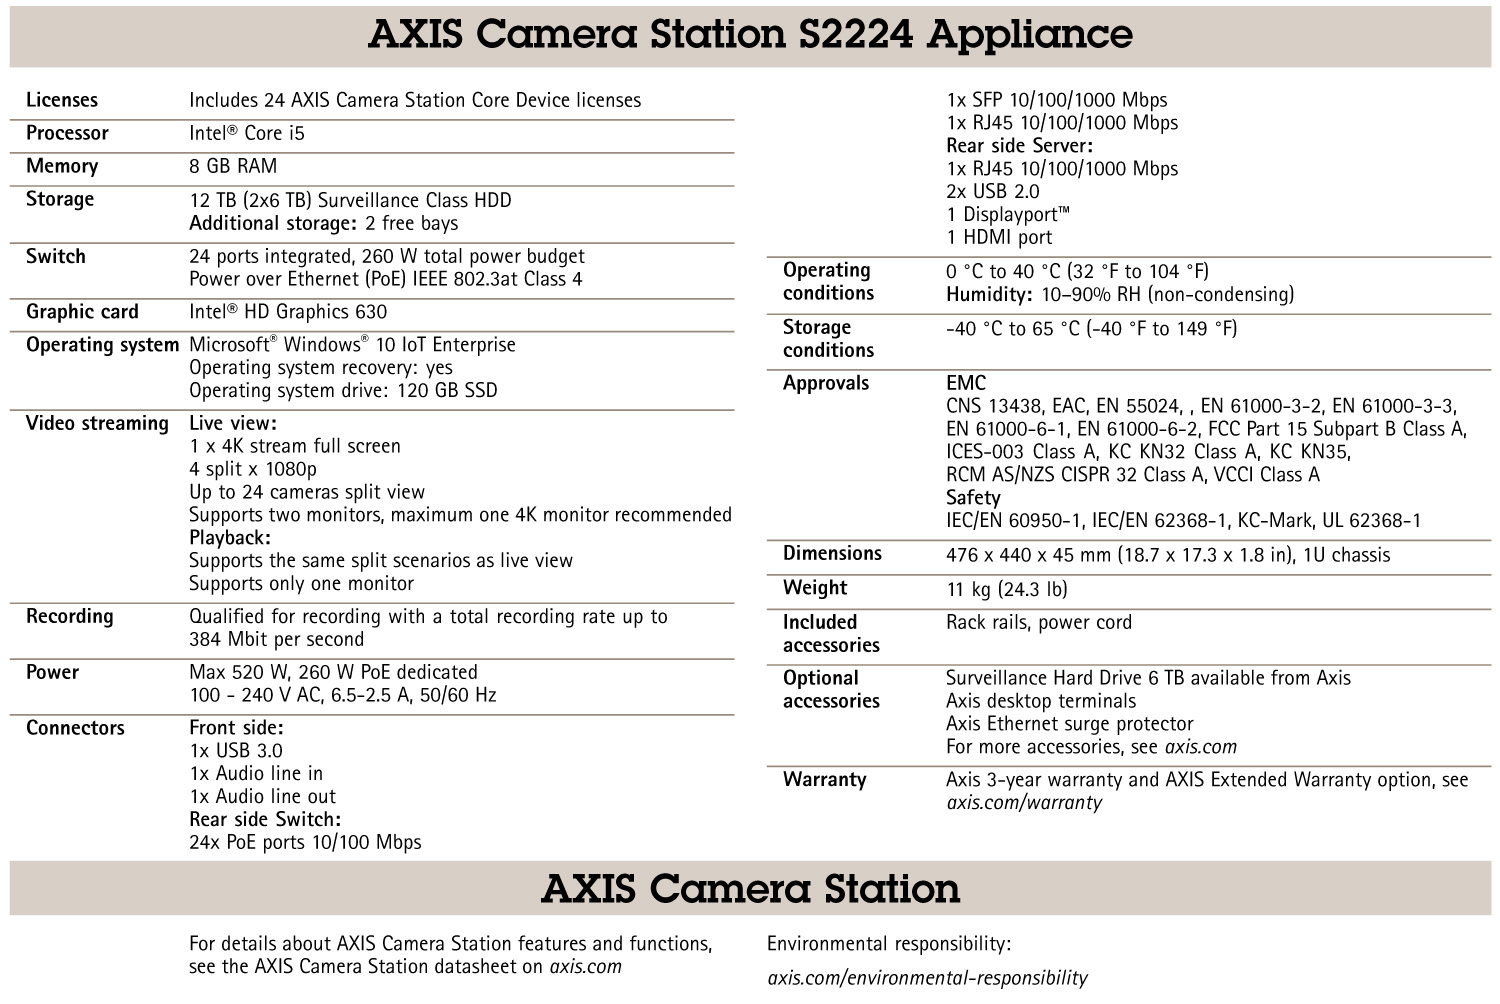 AXIS Camera Station S2224 Appliance